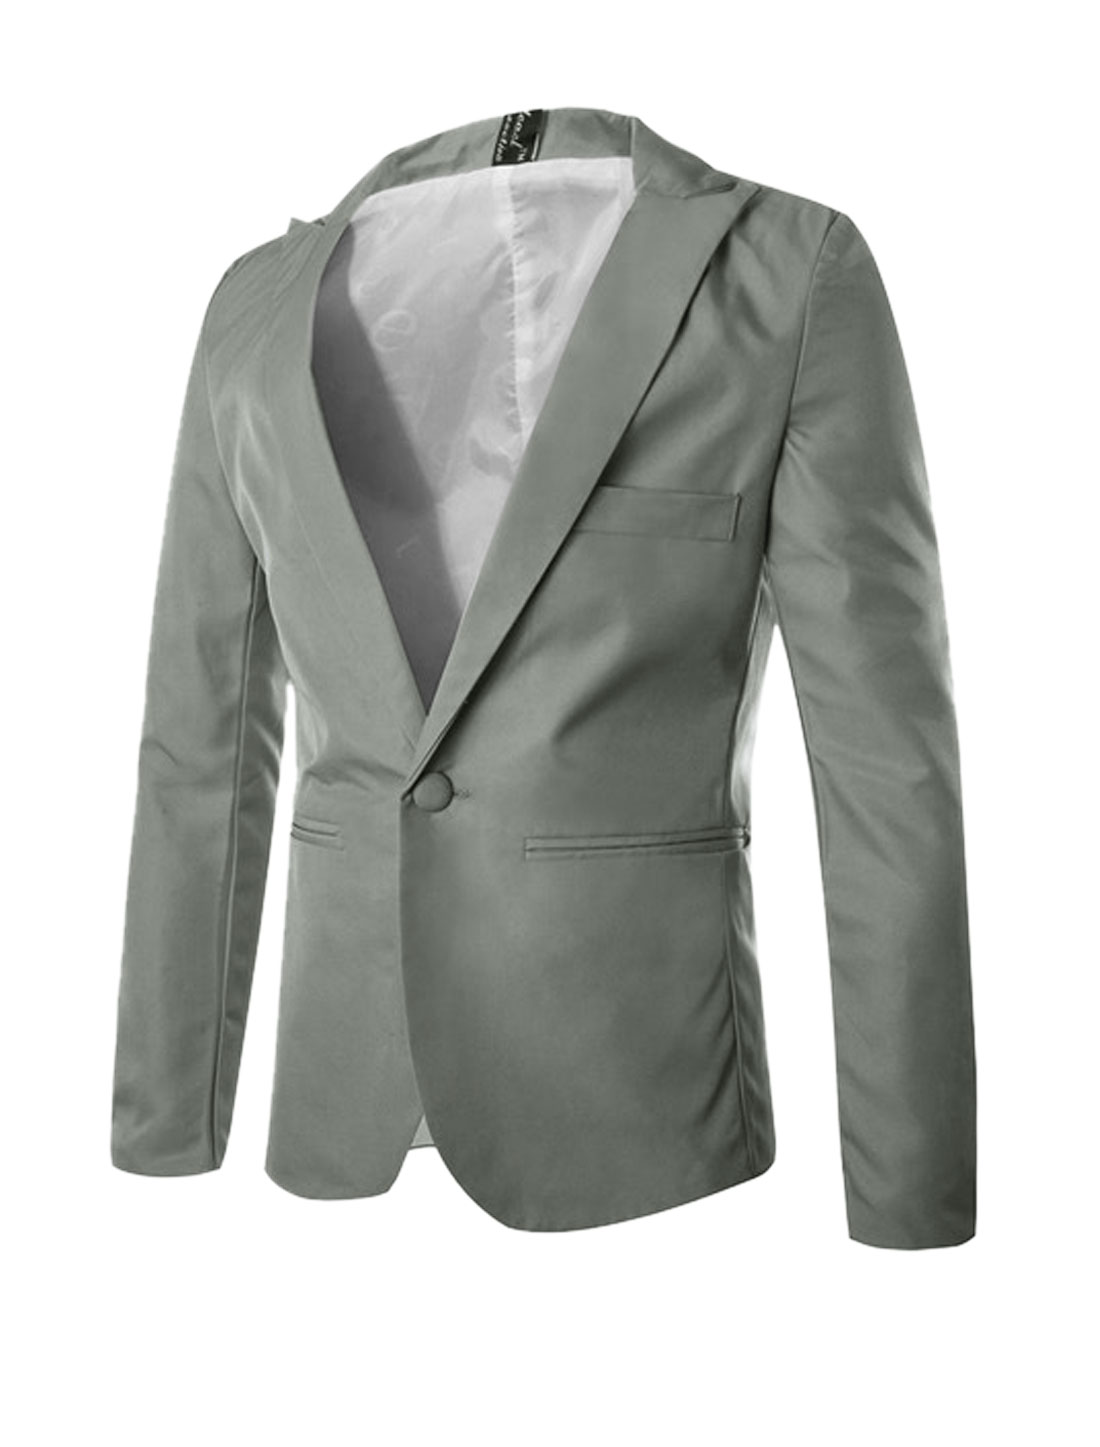 Man NEW Full Sleeves Button Closed Light Gray Blazer Jacket M